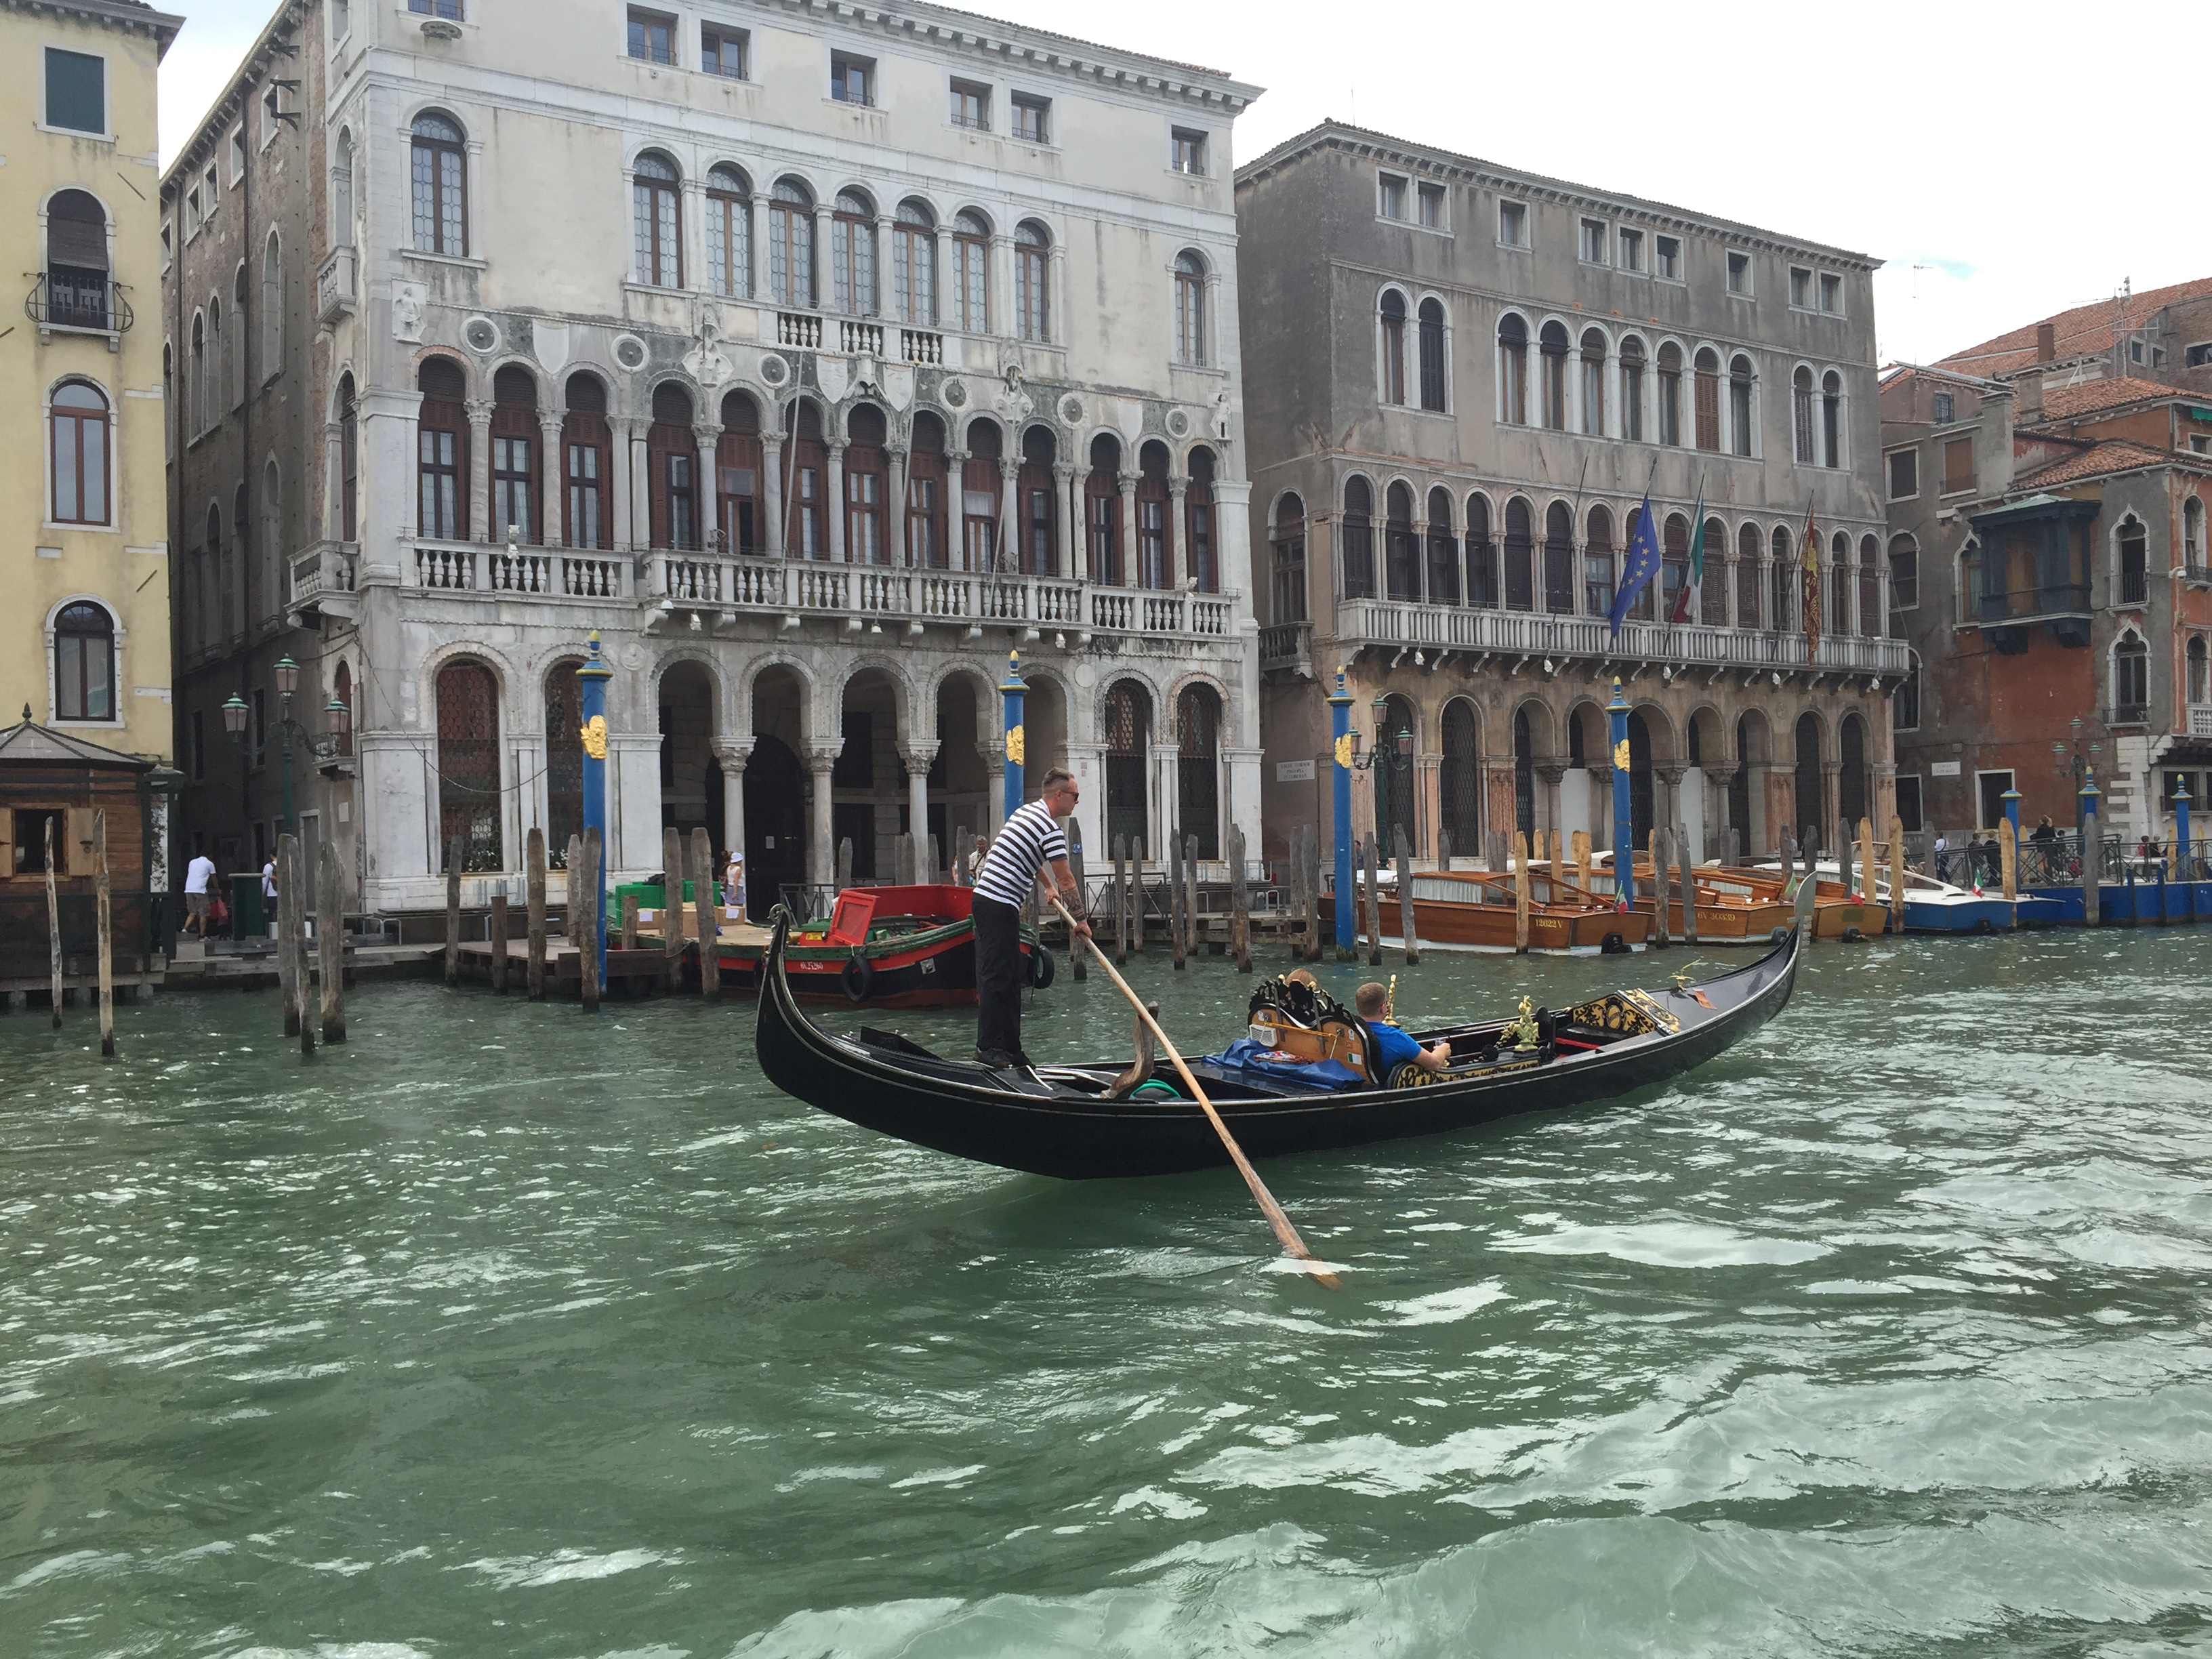 Venice-Gondola on the Grand Canal